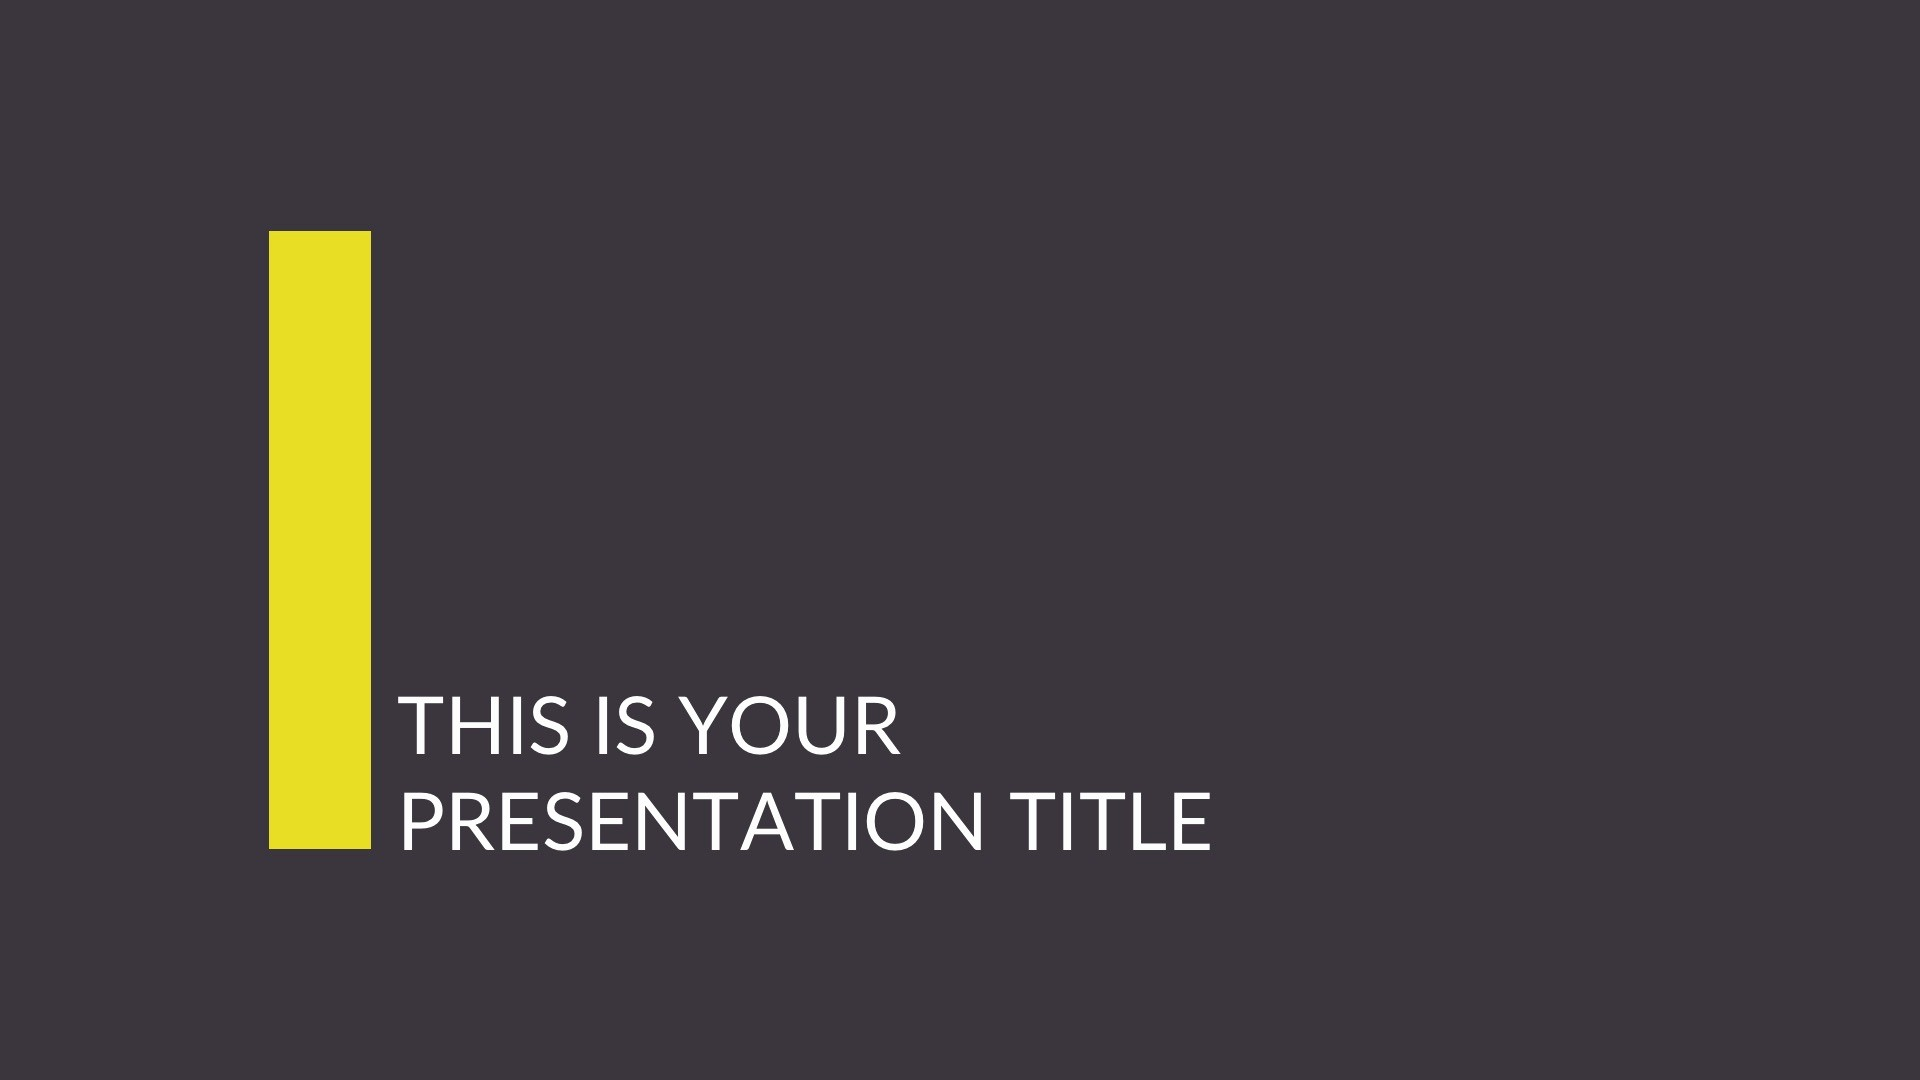 Ppt Templates for Business Presentation New Business Proposal Free Google Slides Powerpoint and